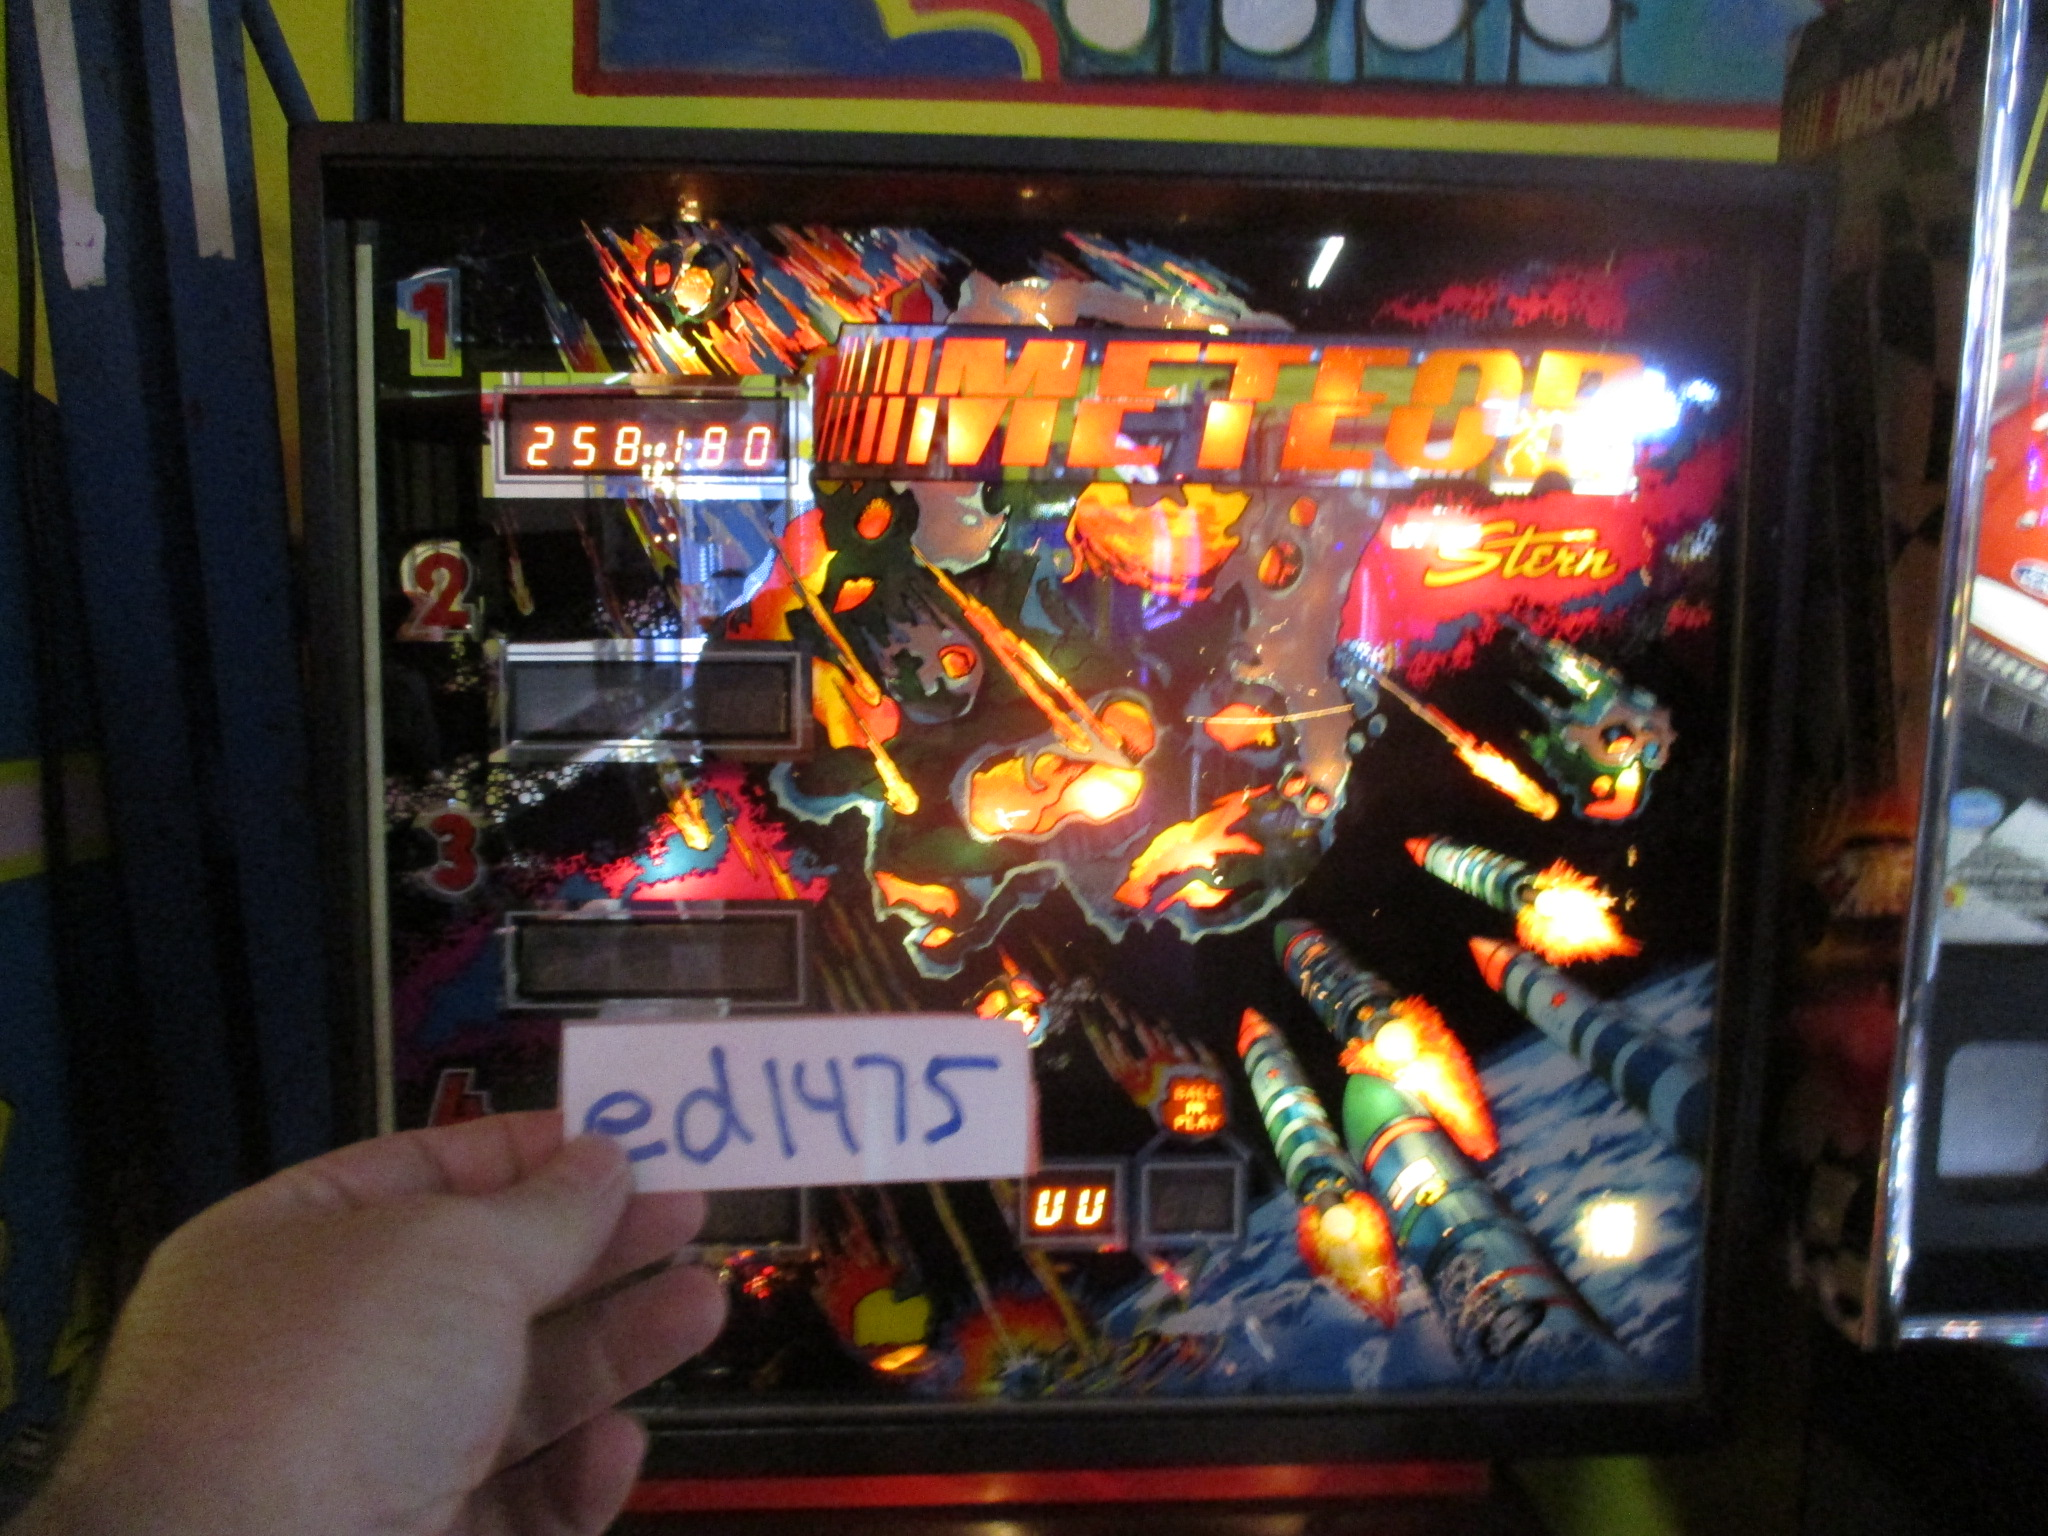 ed1475: Meteor (Pinball: 3 Balls) 258,180 points on 2017-08-24 19:54:21